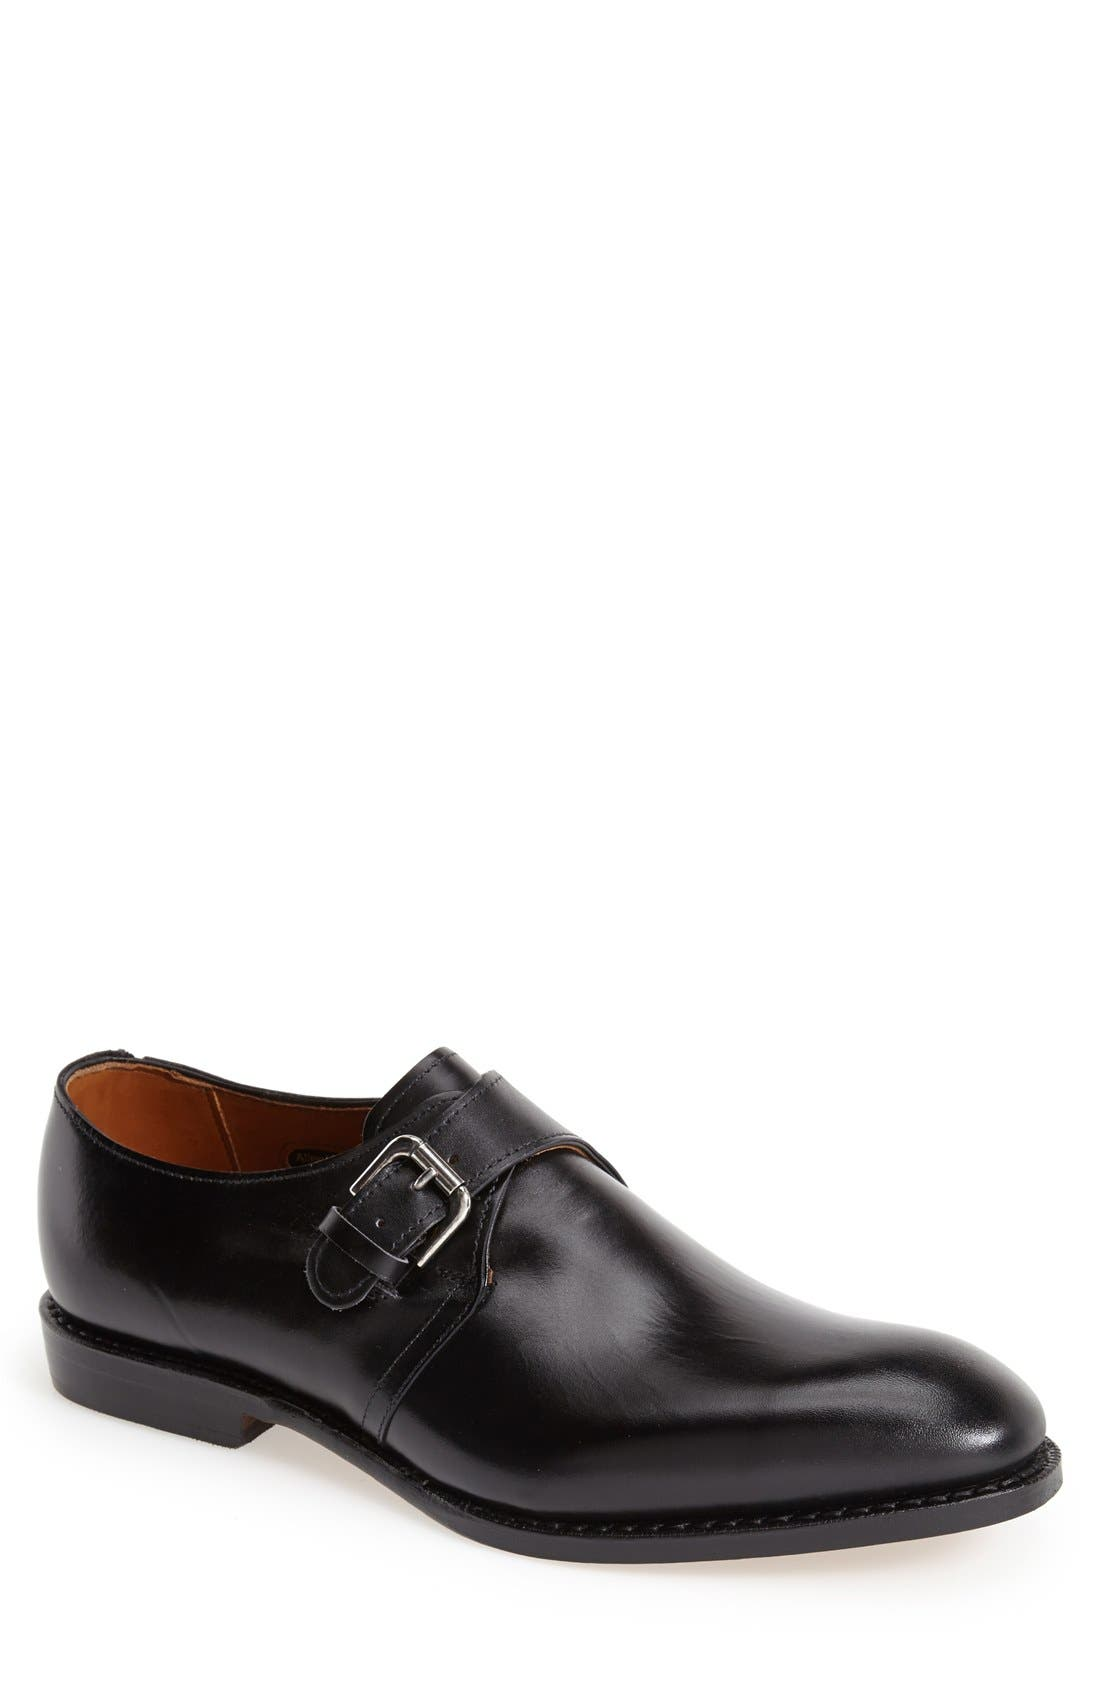 Main Image - Allen Edmonds Warwick Monk Strap Shoe (Men)